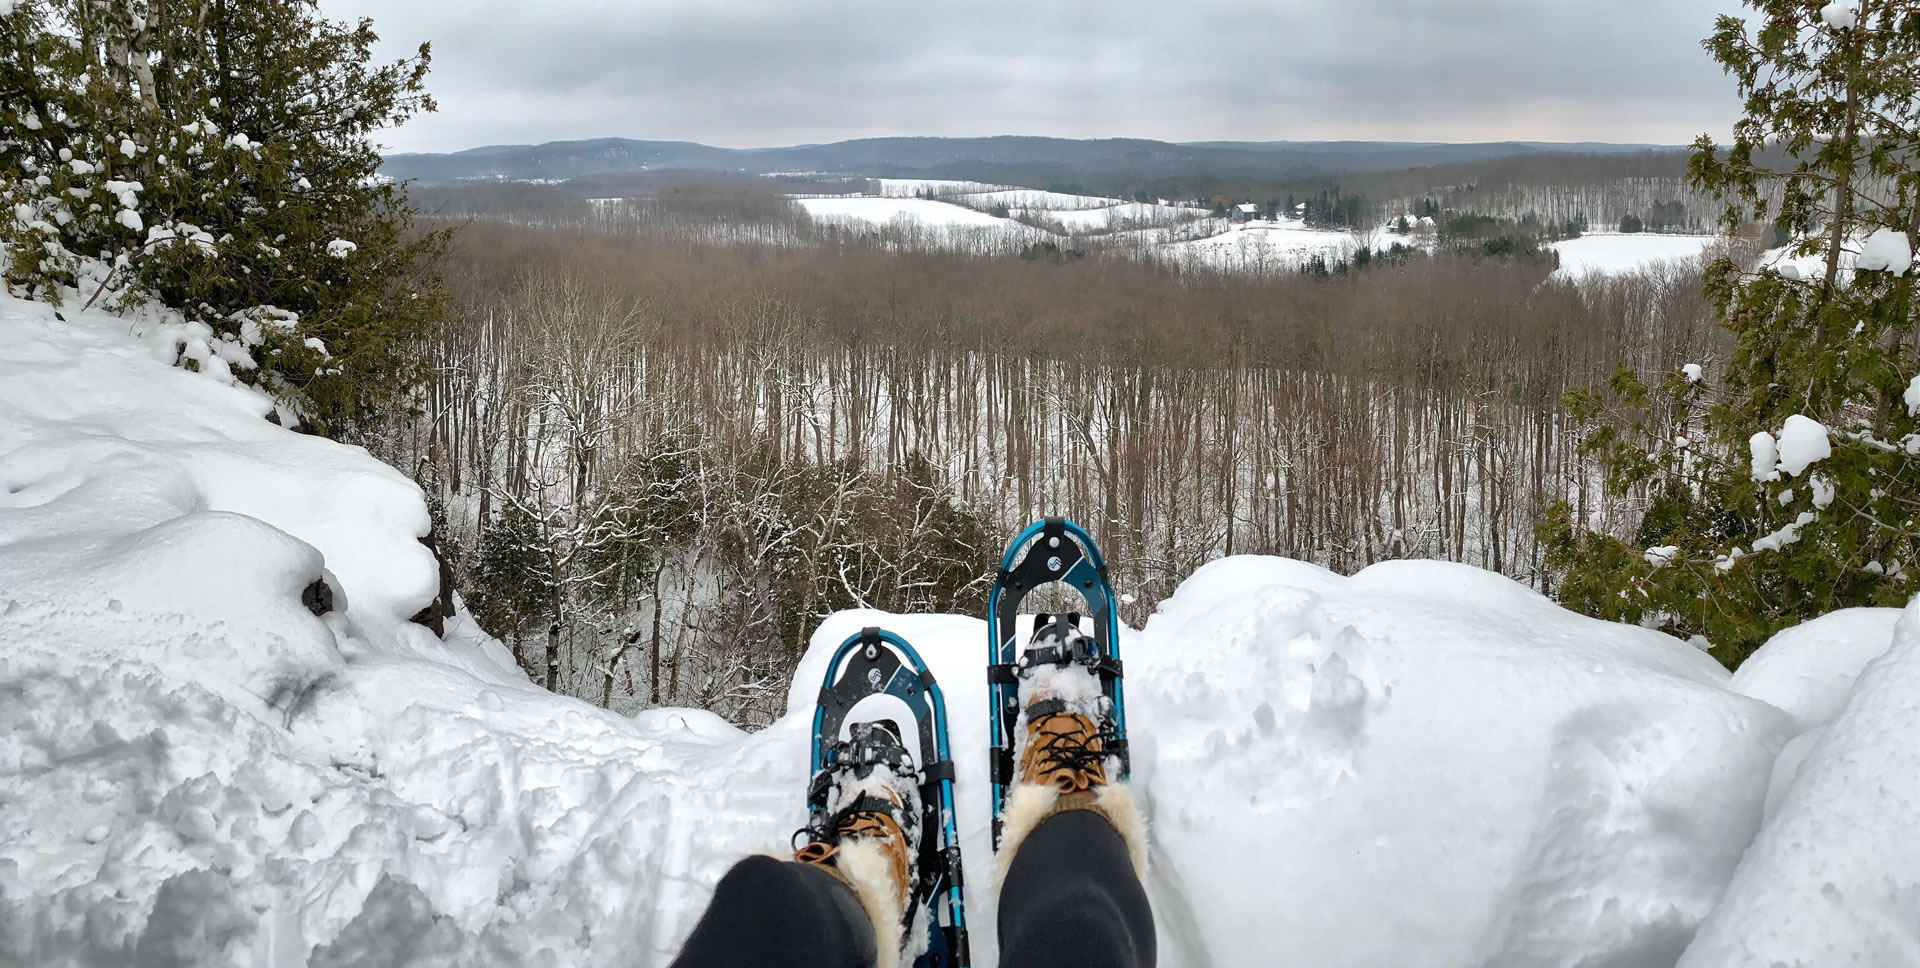 Snowshoeing and overlooking Nottawasaga Bluffs